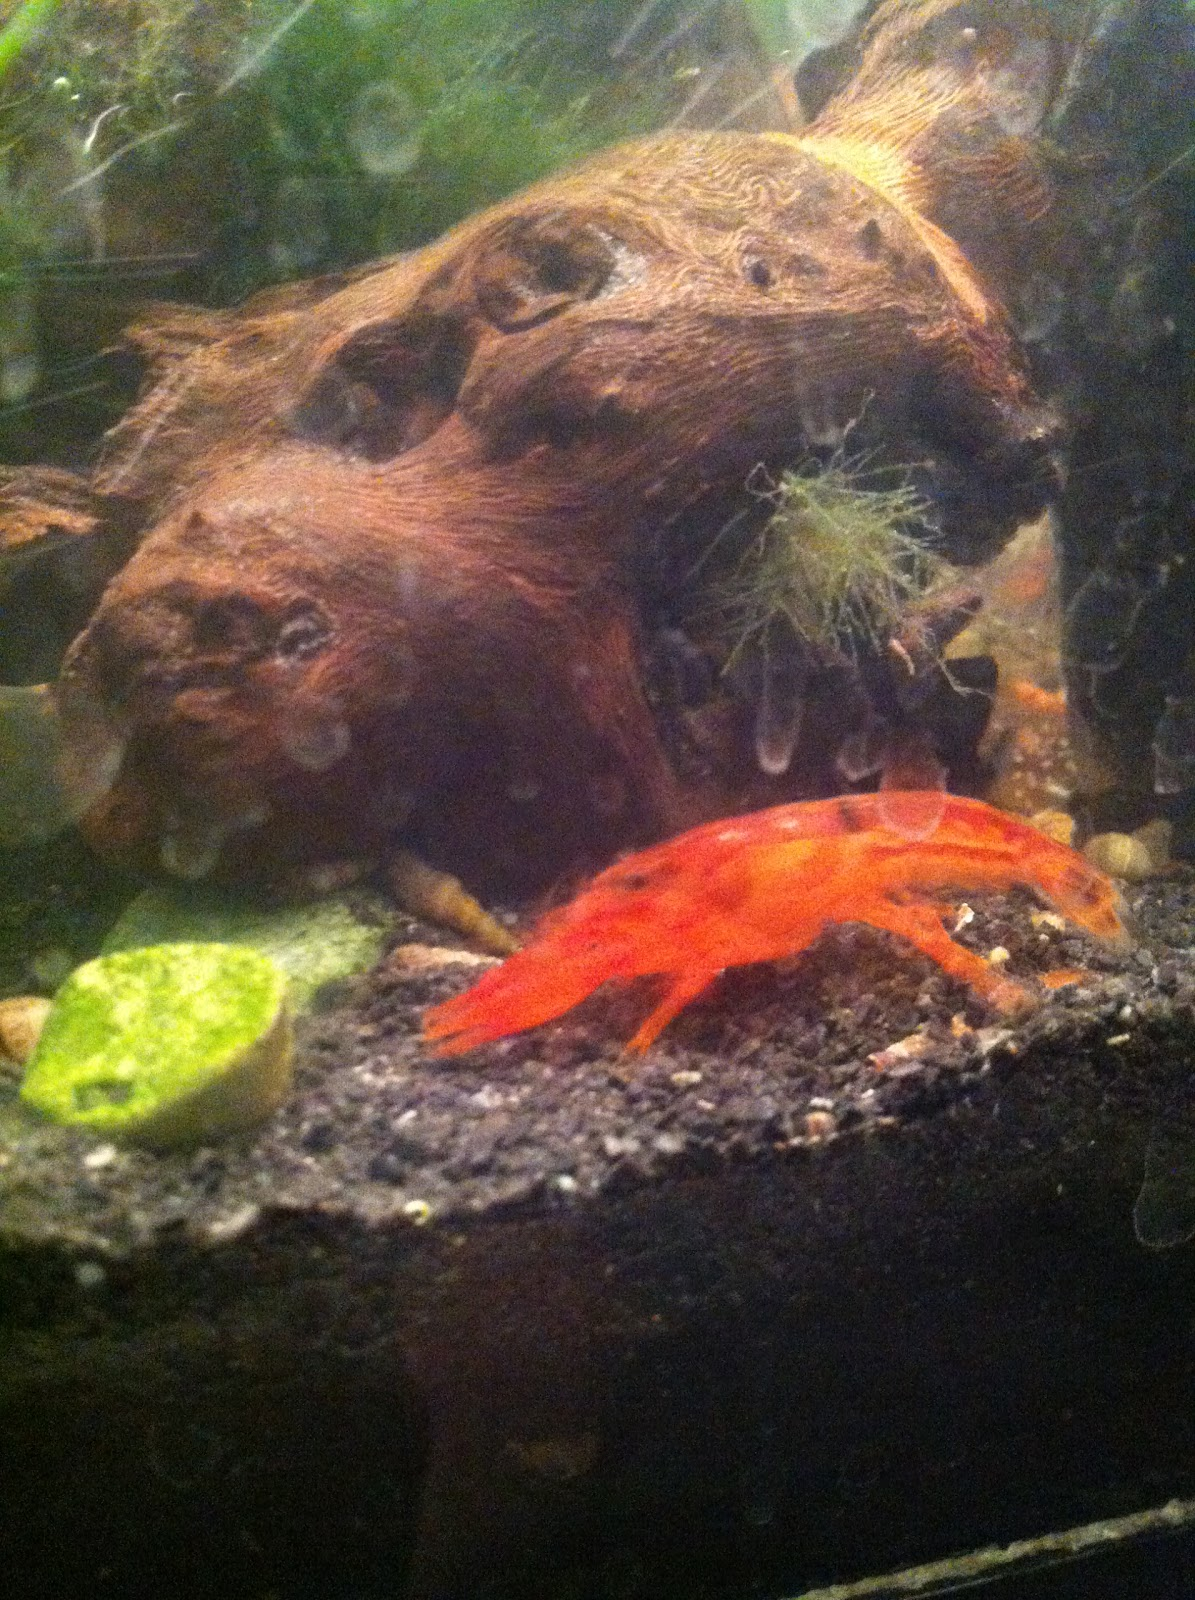 Mini Aquariums: Dwarf Orange Crayfish